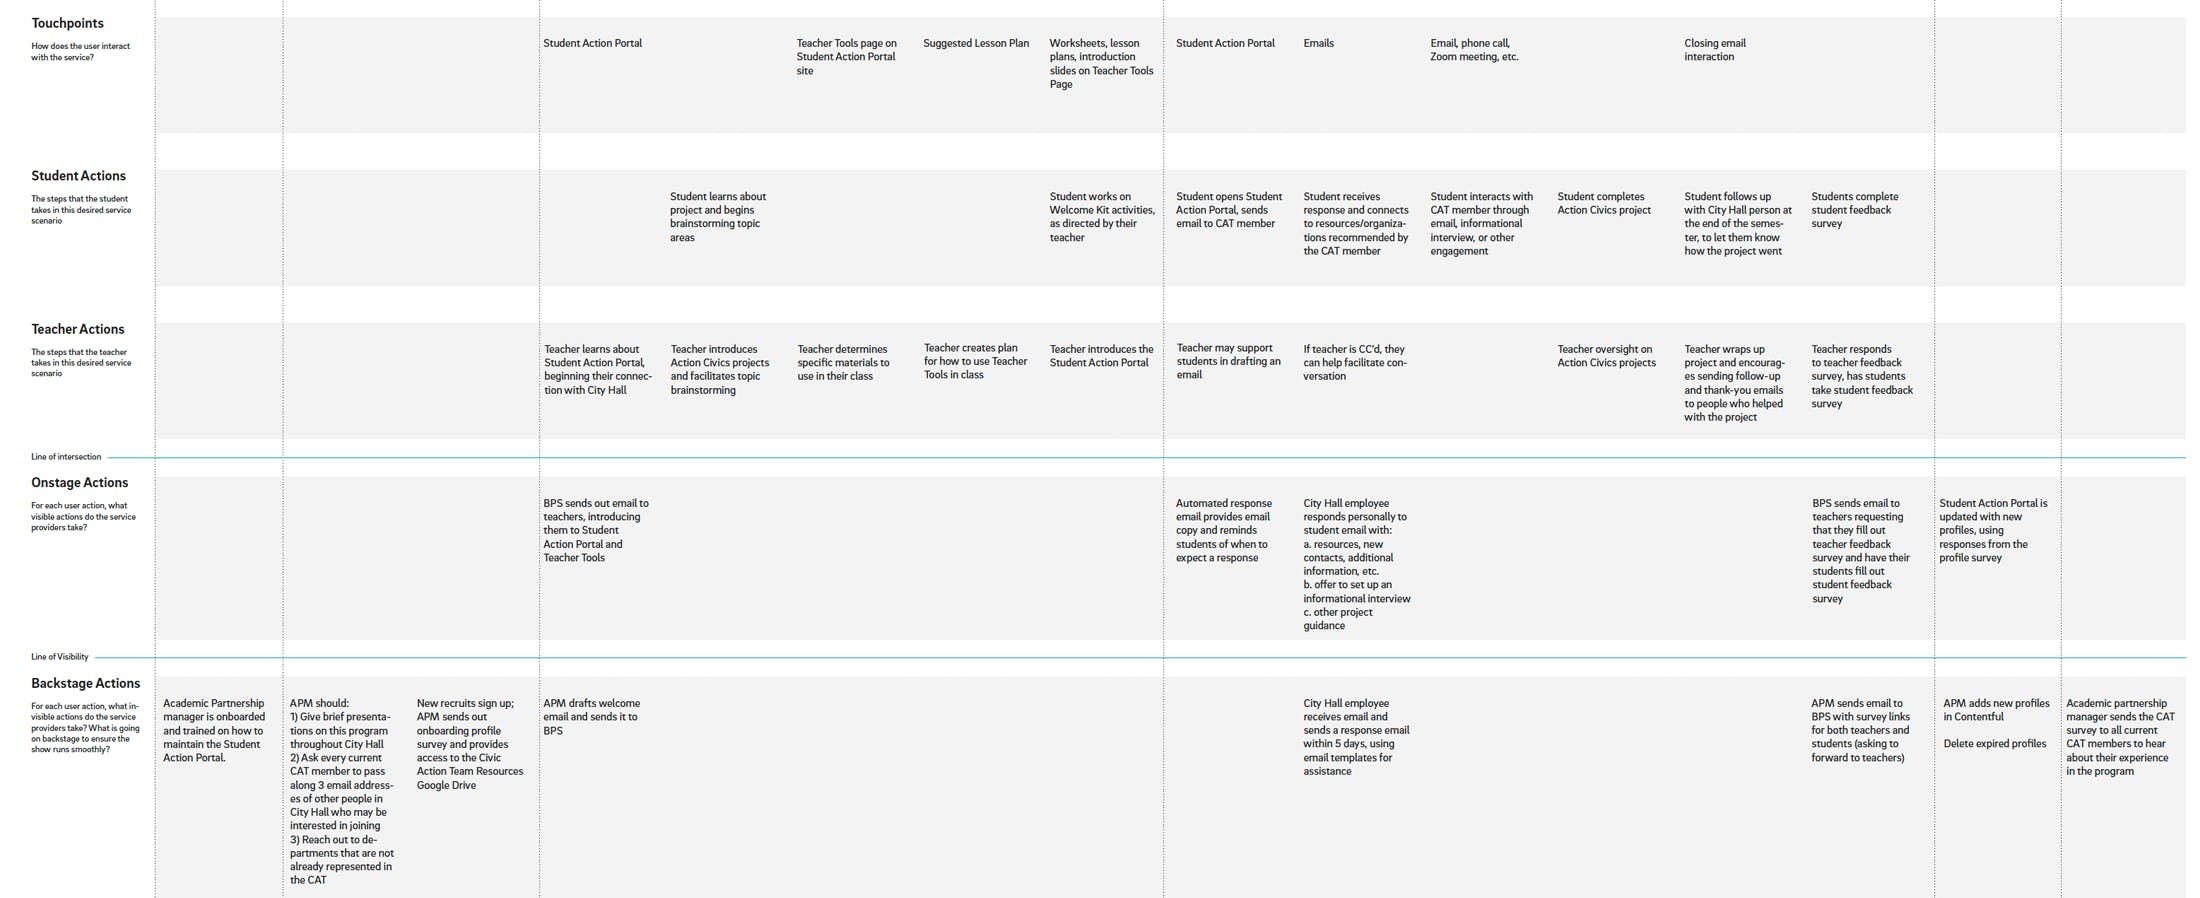 Service blueprint with 5 rows: Touchpoints, student actions, teacher actions, onstage actions, and backstage actions